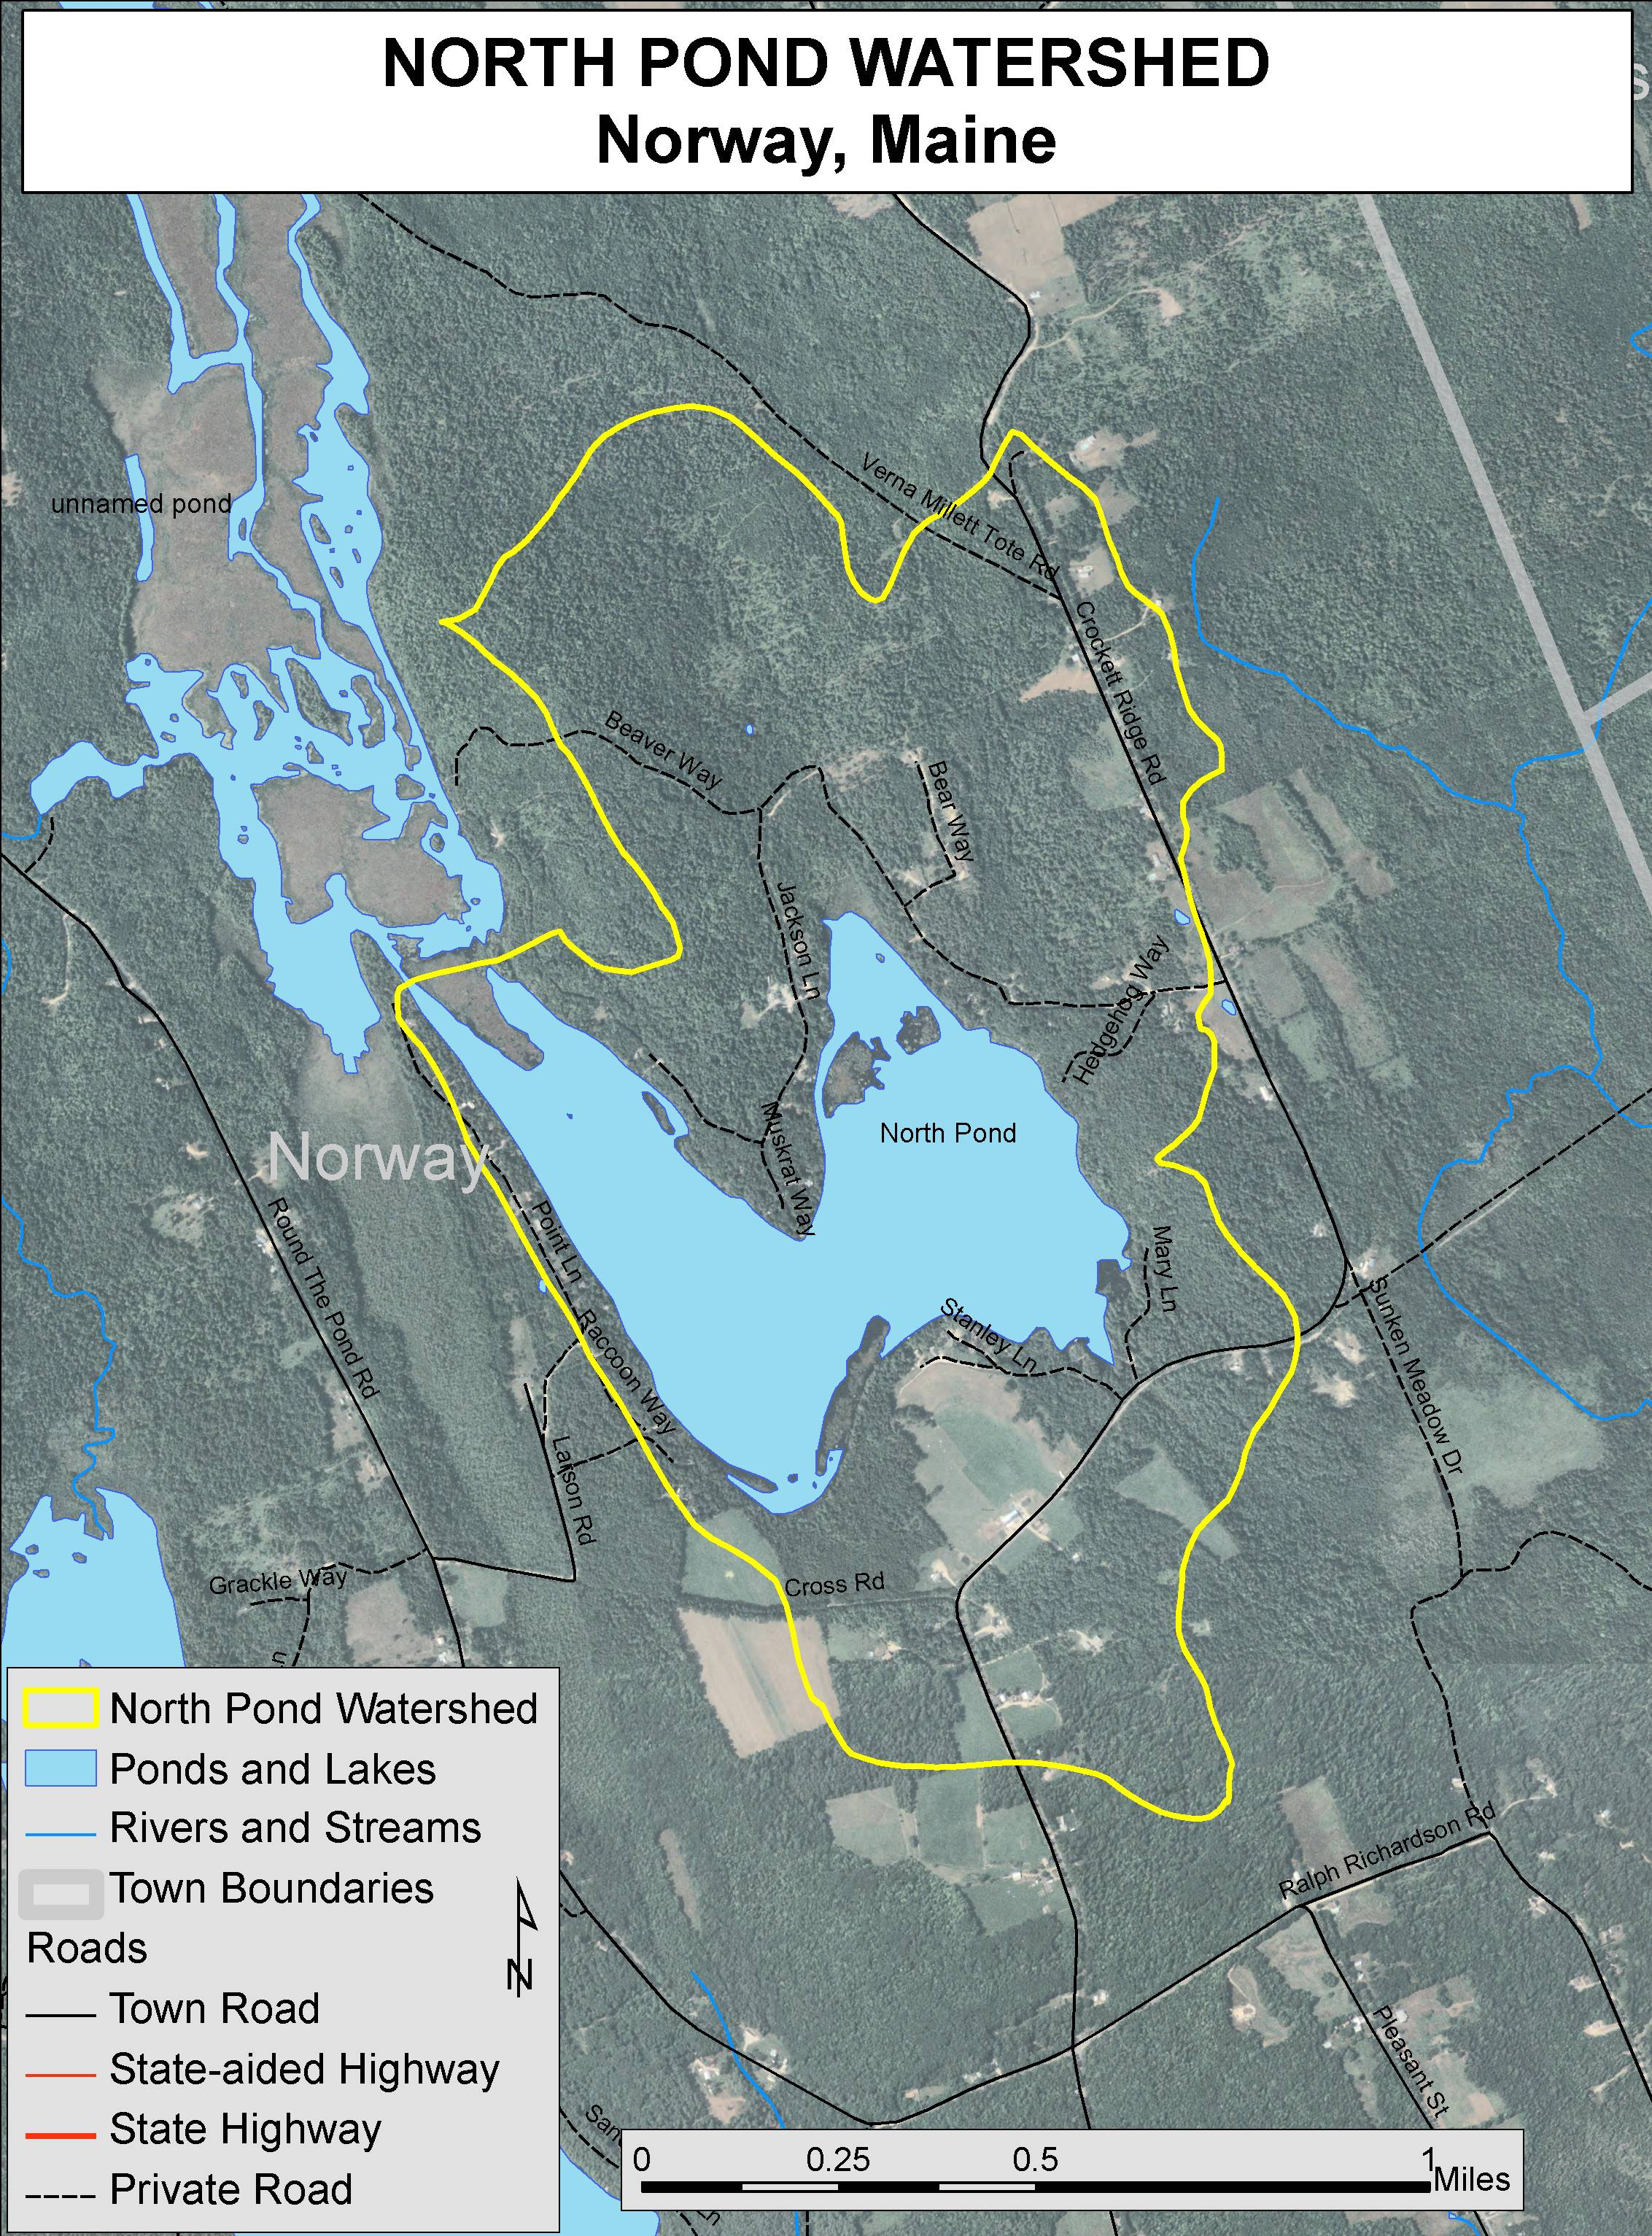 South Paris Maine Map.Lakes Of Maine Lake Overview North Pond Norway Oxford Maine